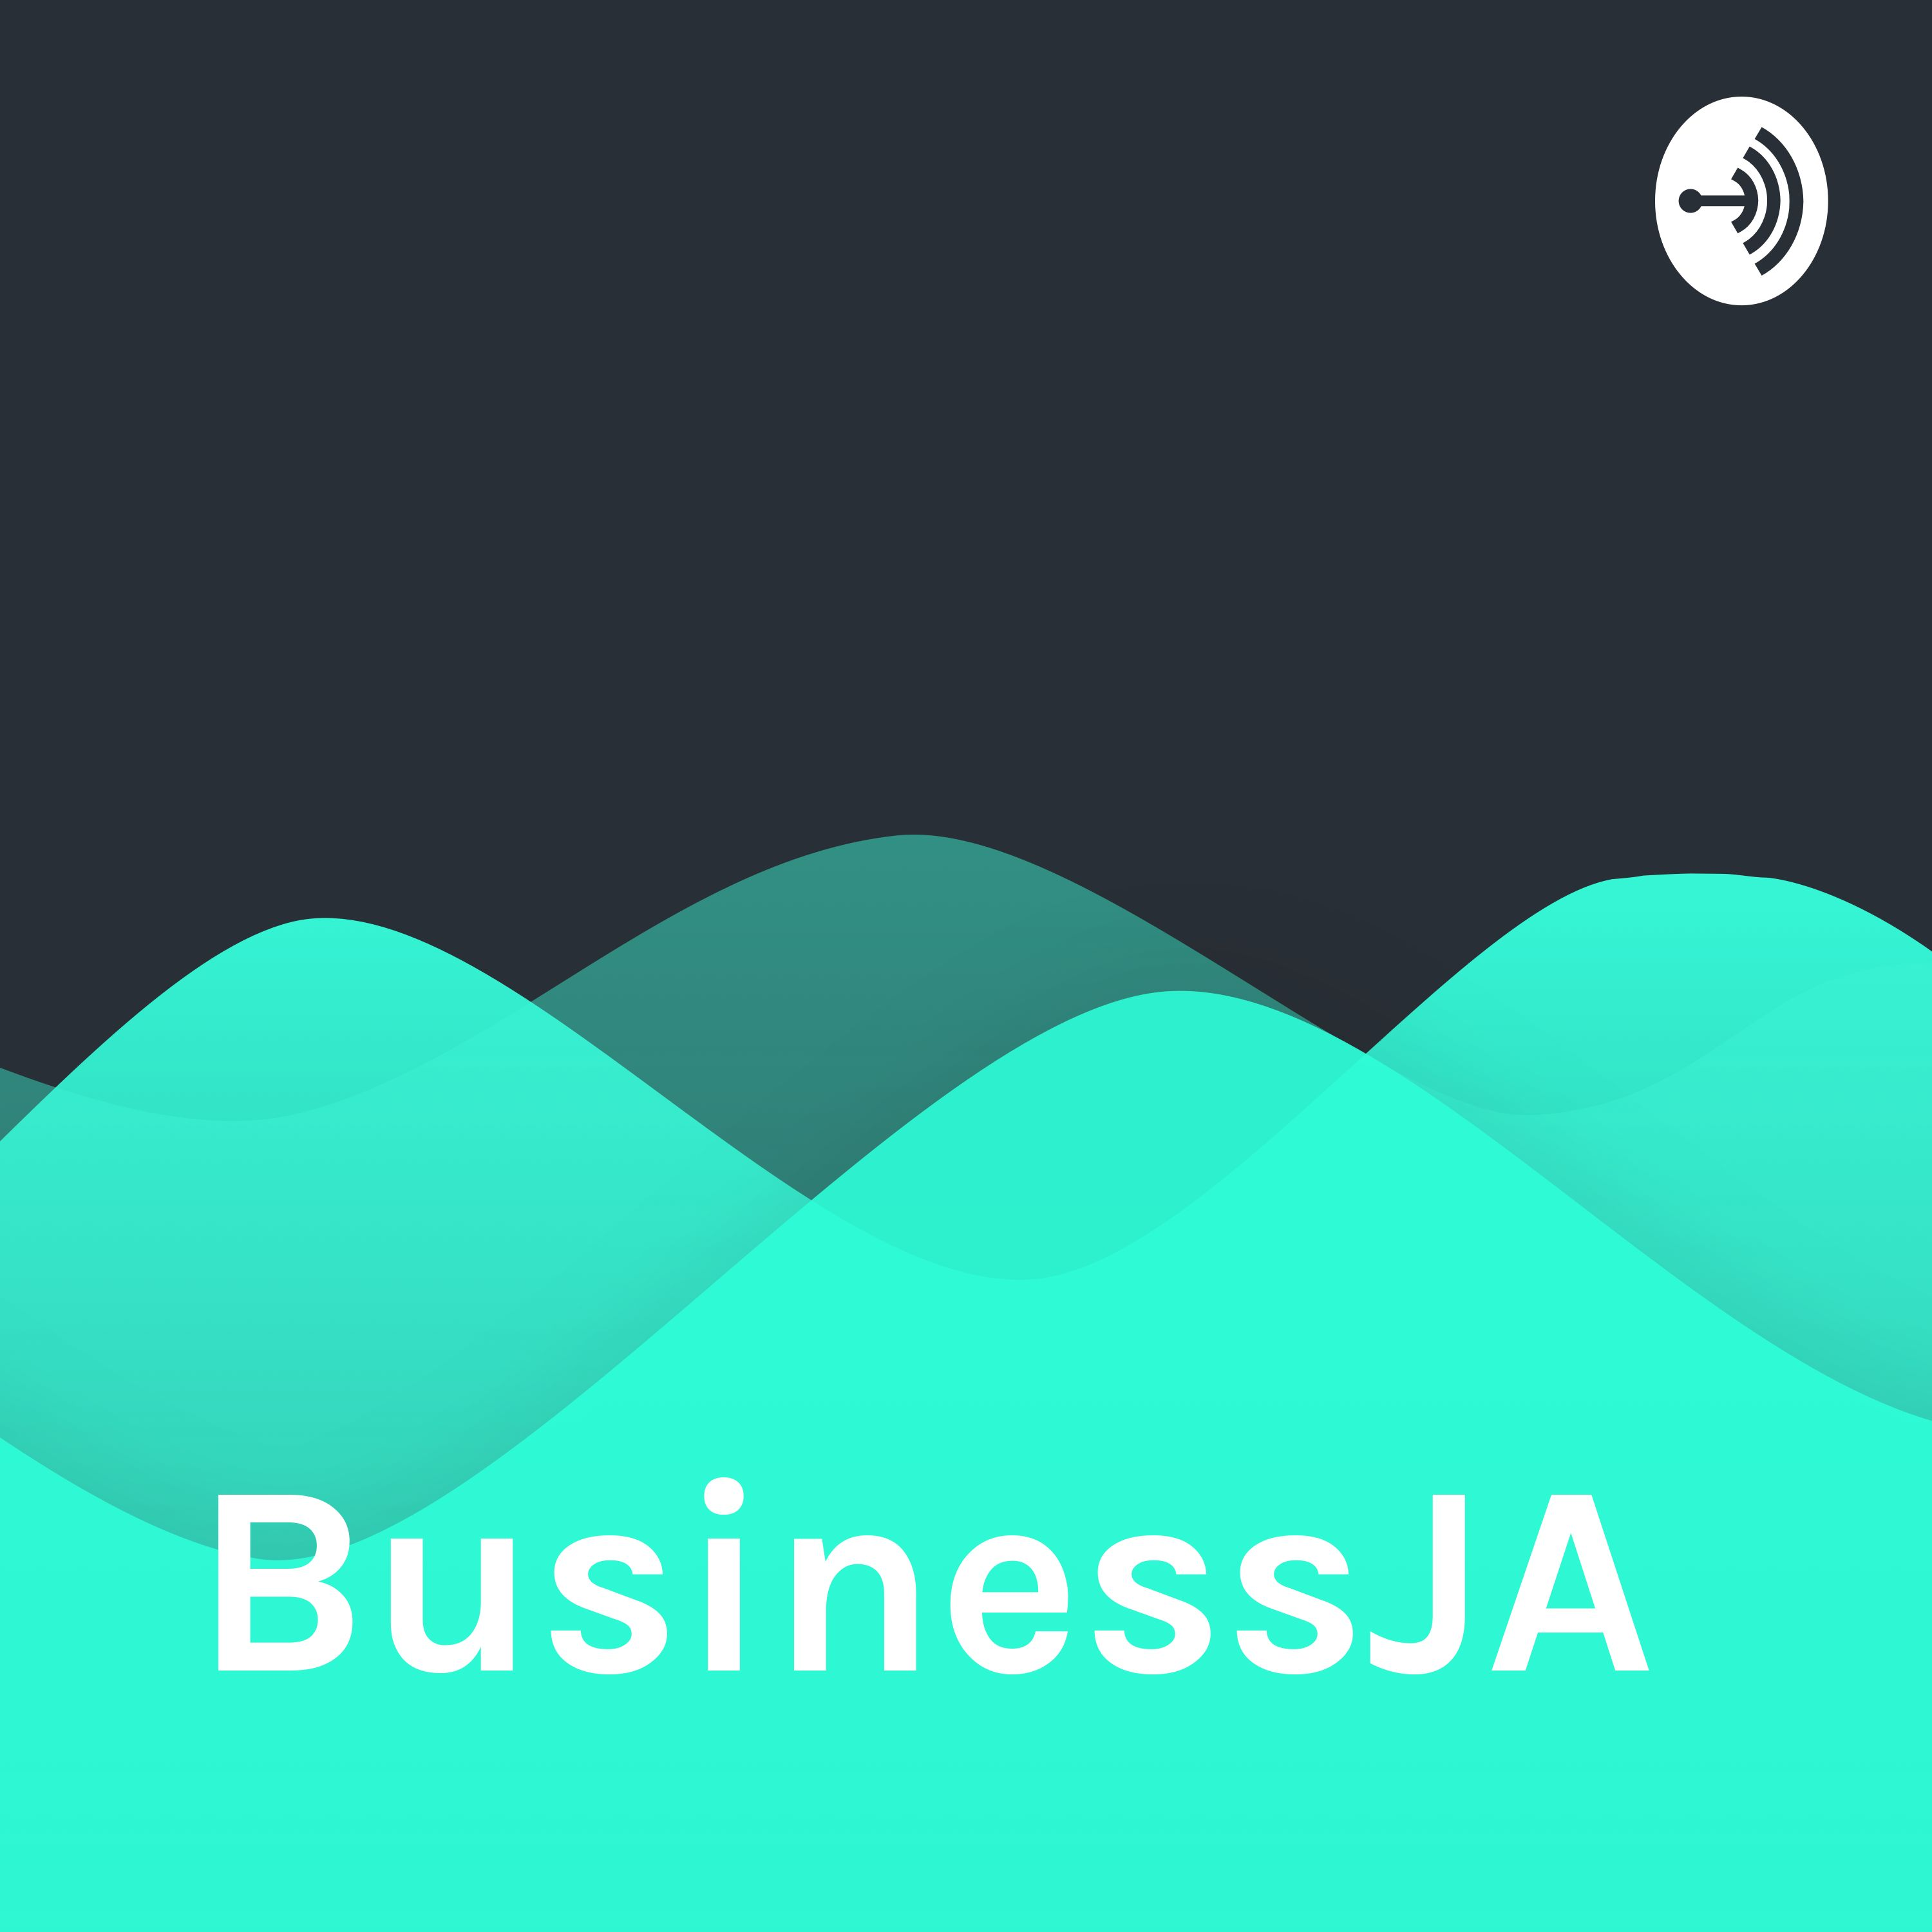 BusinessJA is a Business Internet Directory  We offer Jamaica Yellow